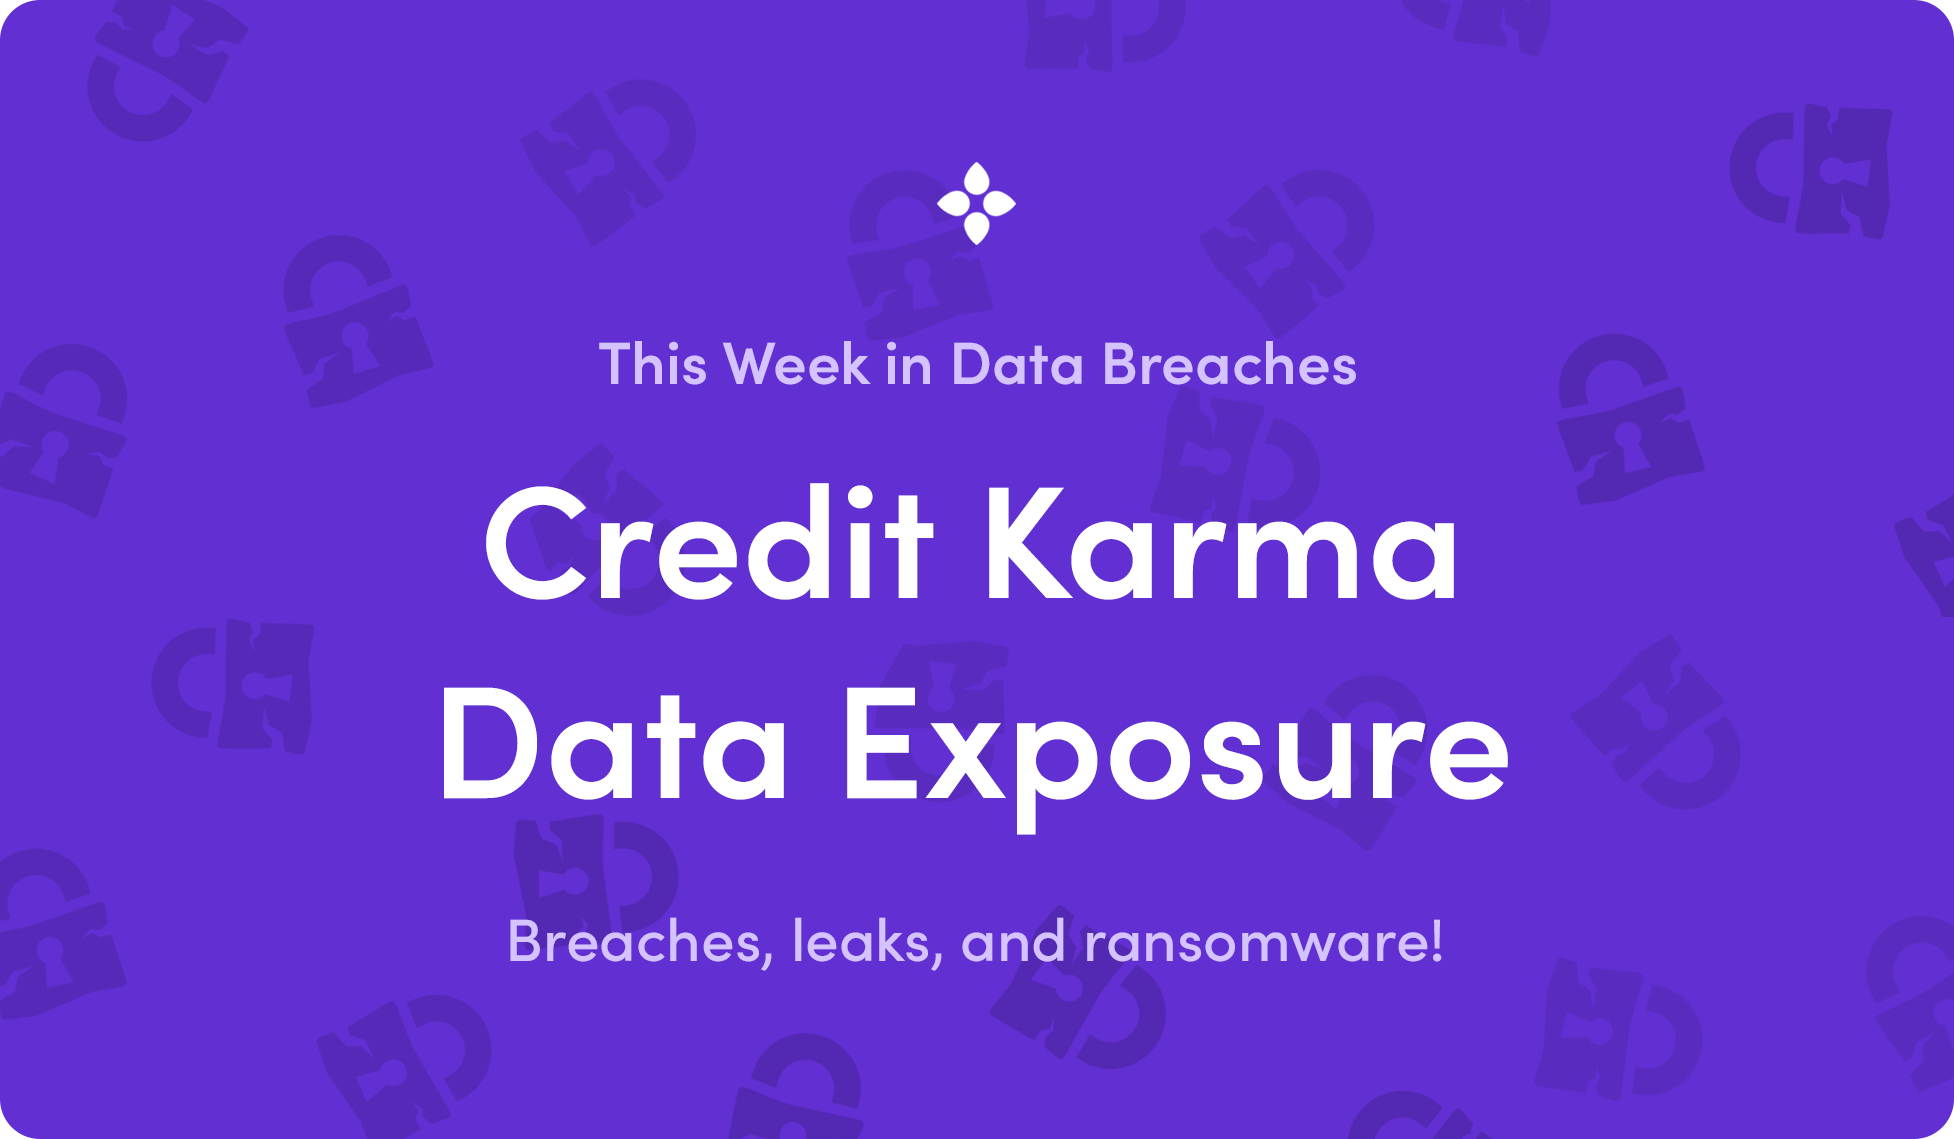 credit karma data exposure